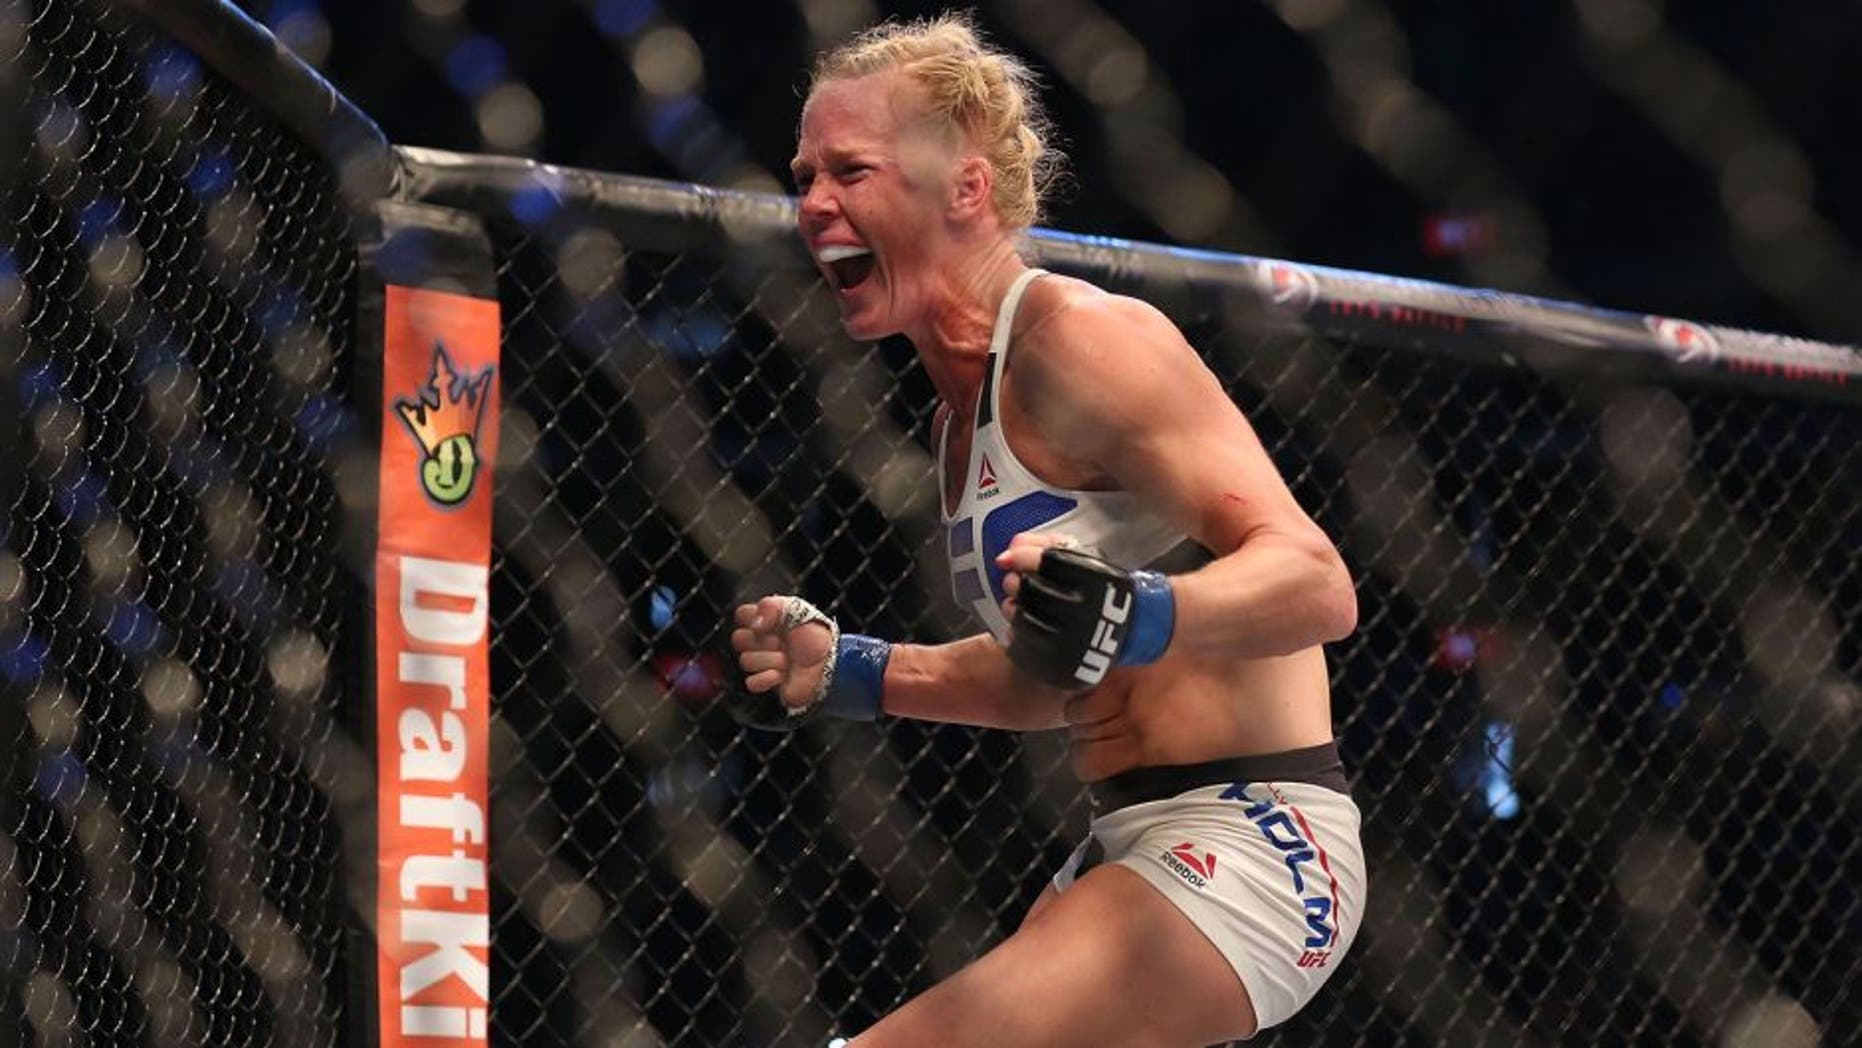 MELBOURNE, AUSTRALIA - NOVEMBER 15: Holly Holm of the United States celebrates victory over Ronda Rousey of the United States in their UFC women's bantamweight championship bout during the UFC 193 event at Etihad Stadium on November 15, 2015 in Melbourne, Australia. (Photo by Quinn Rooney/Getty Images)